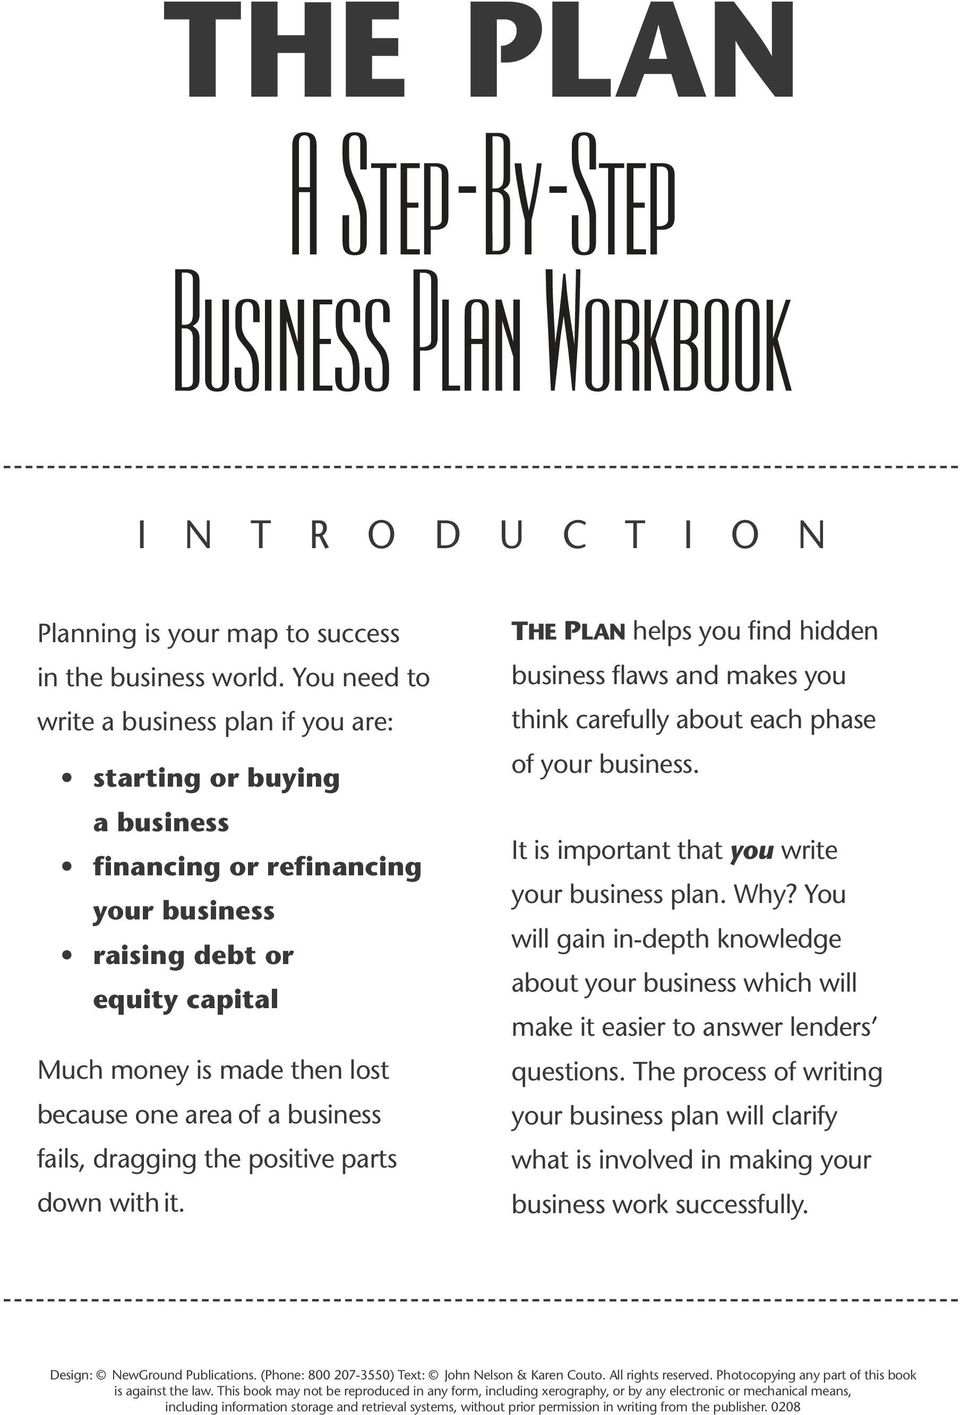 business fails, dragging the positive parts down with it. THE PLAN helps you find hidden business flaws and makes you think carefully about each phase of your business.